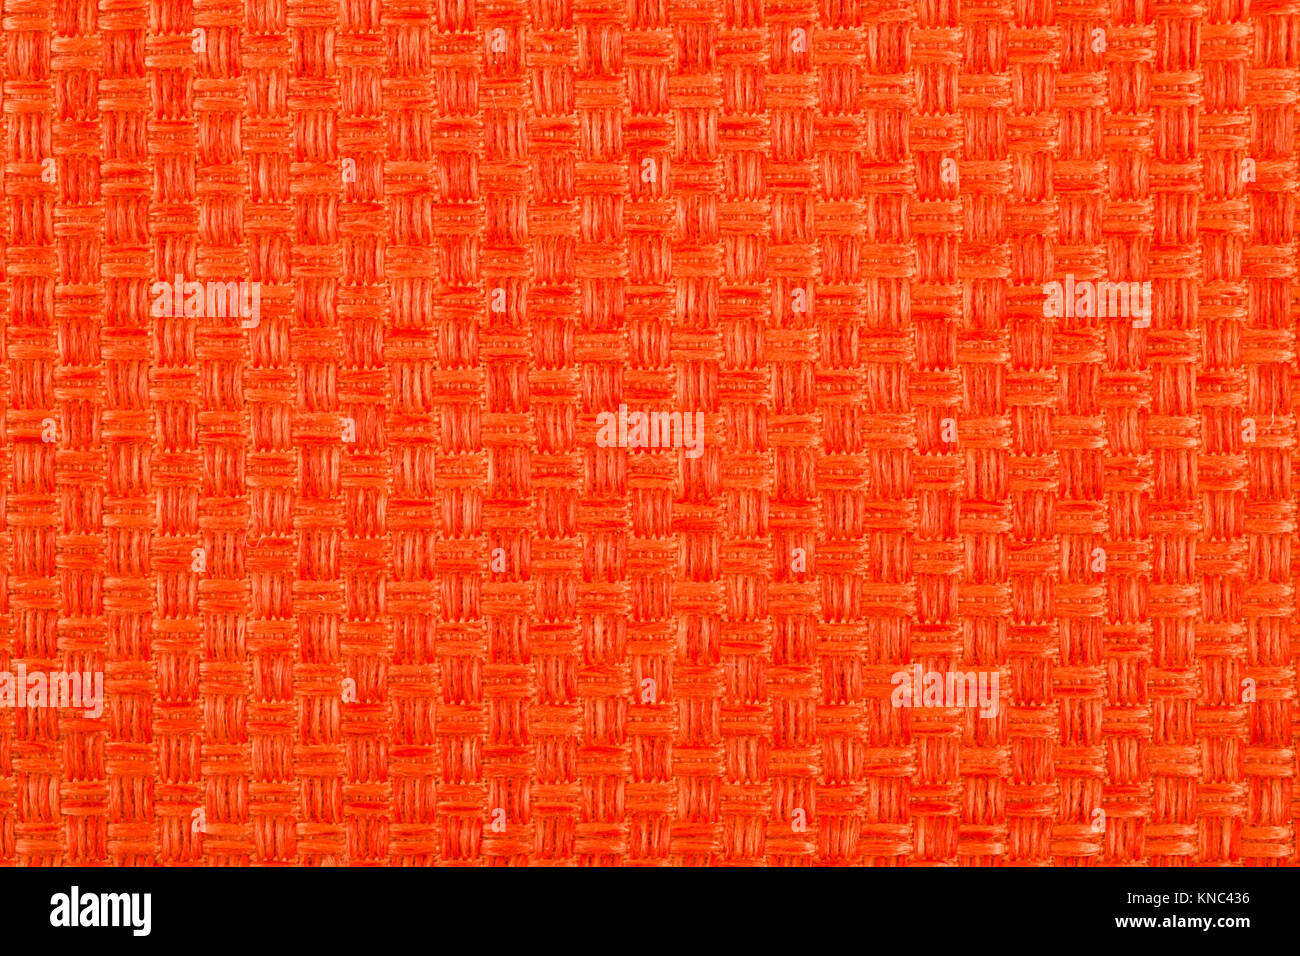 Background of orange colored cloth - Stock Image